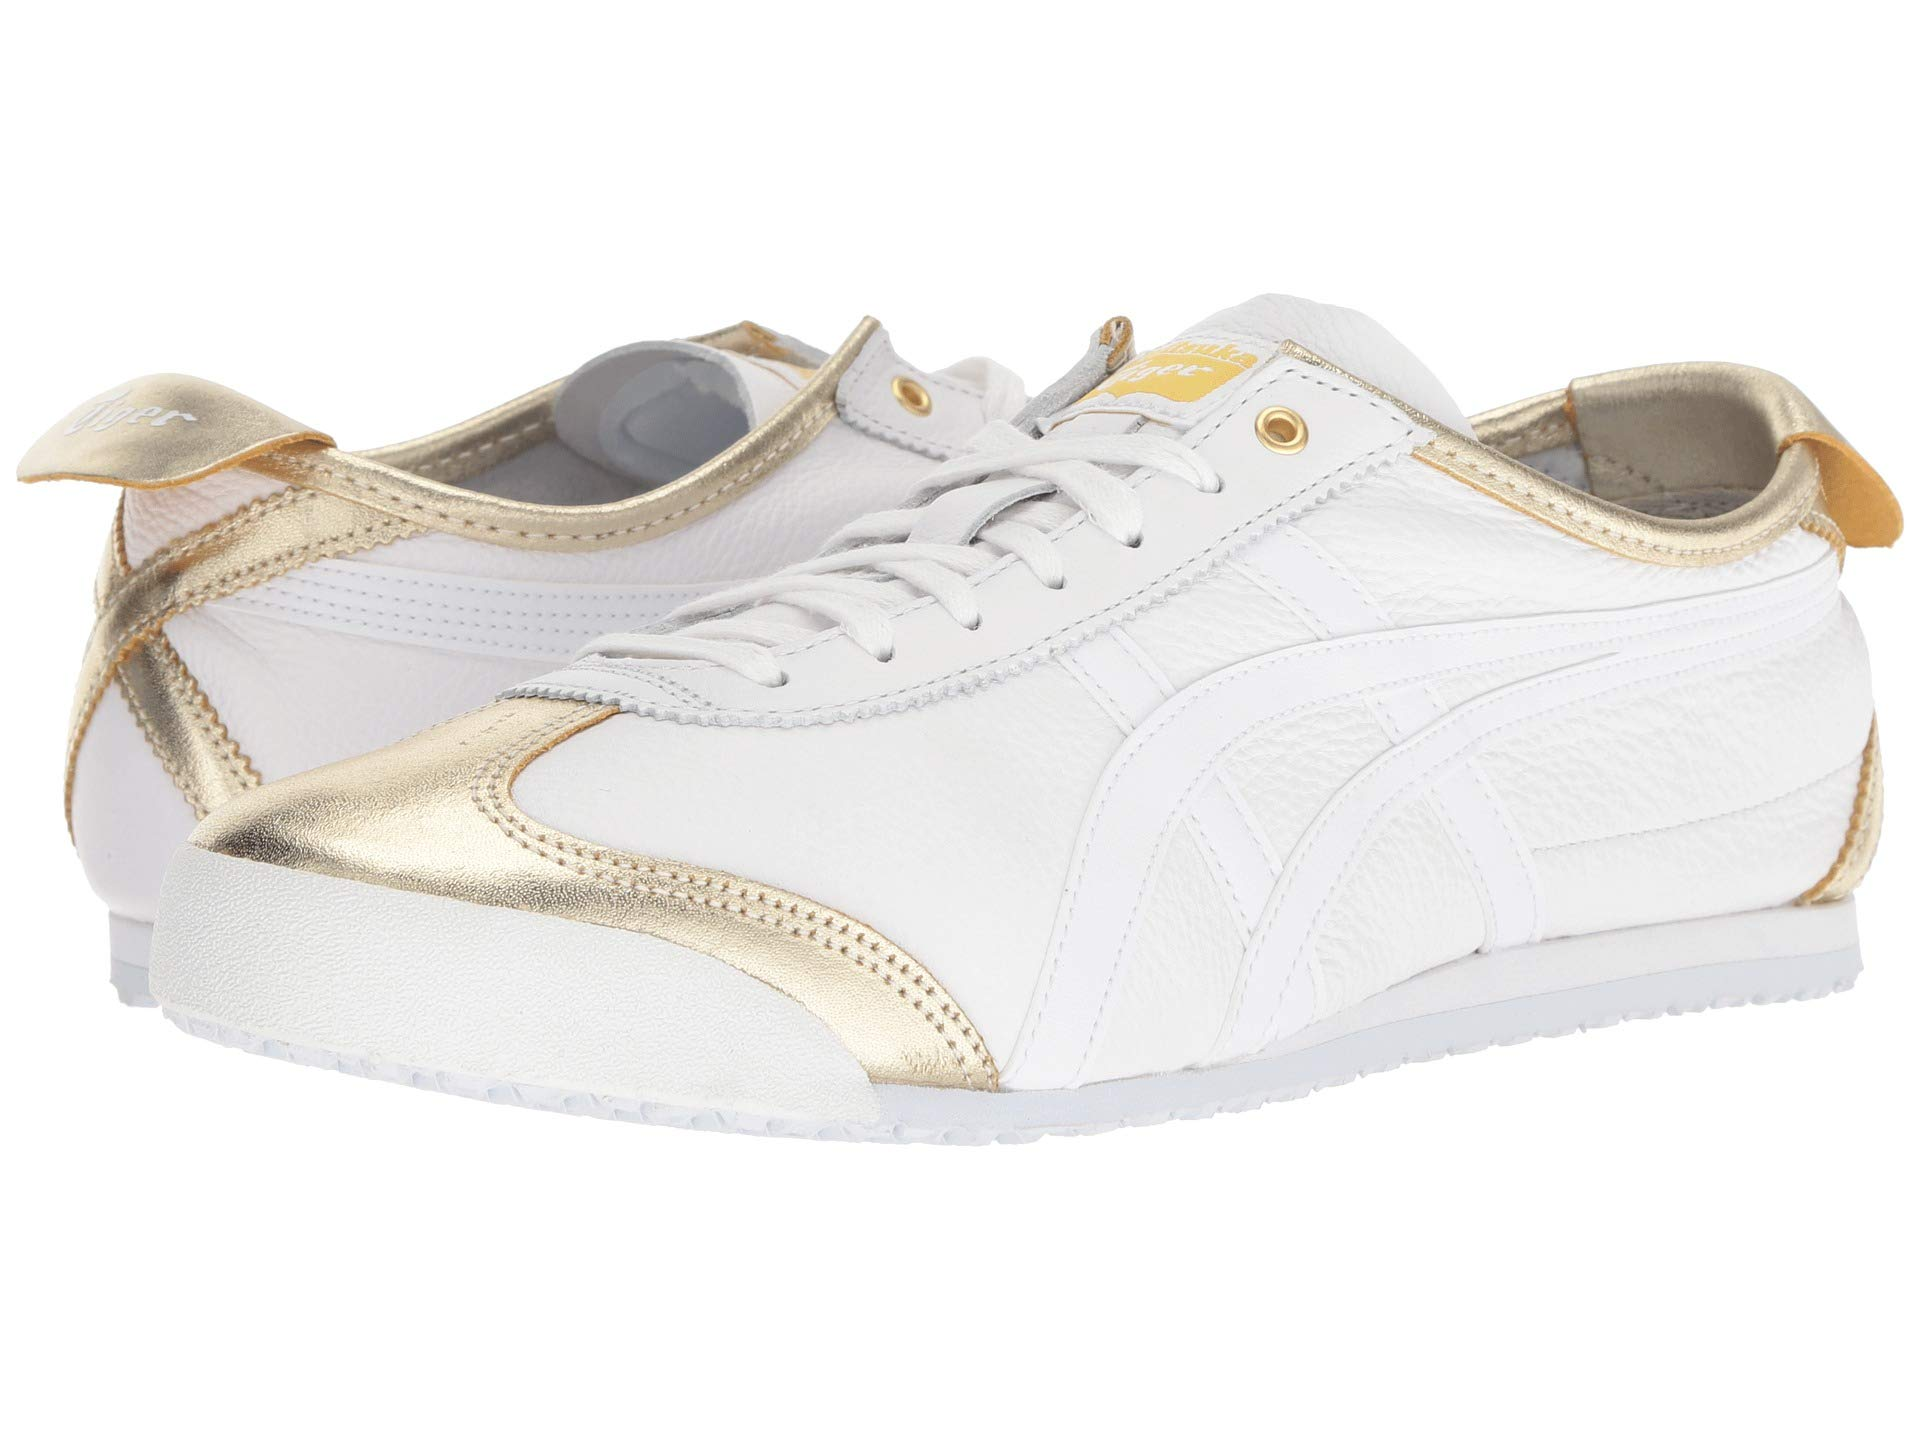 on sale ff2ed 24ecd Кроссовки Onitsuka Tiger by Asics Mexico 66 Gold, 42 (265 мм) (10145563)